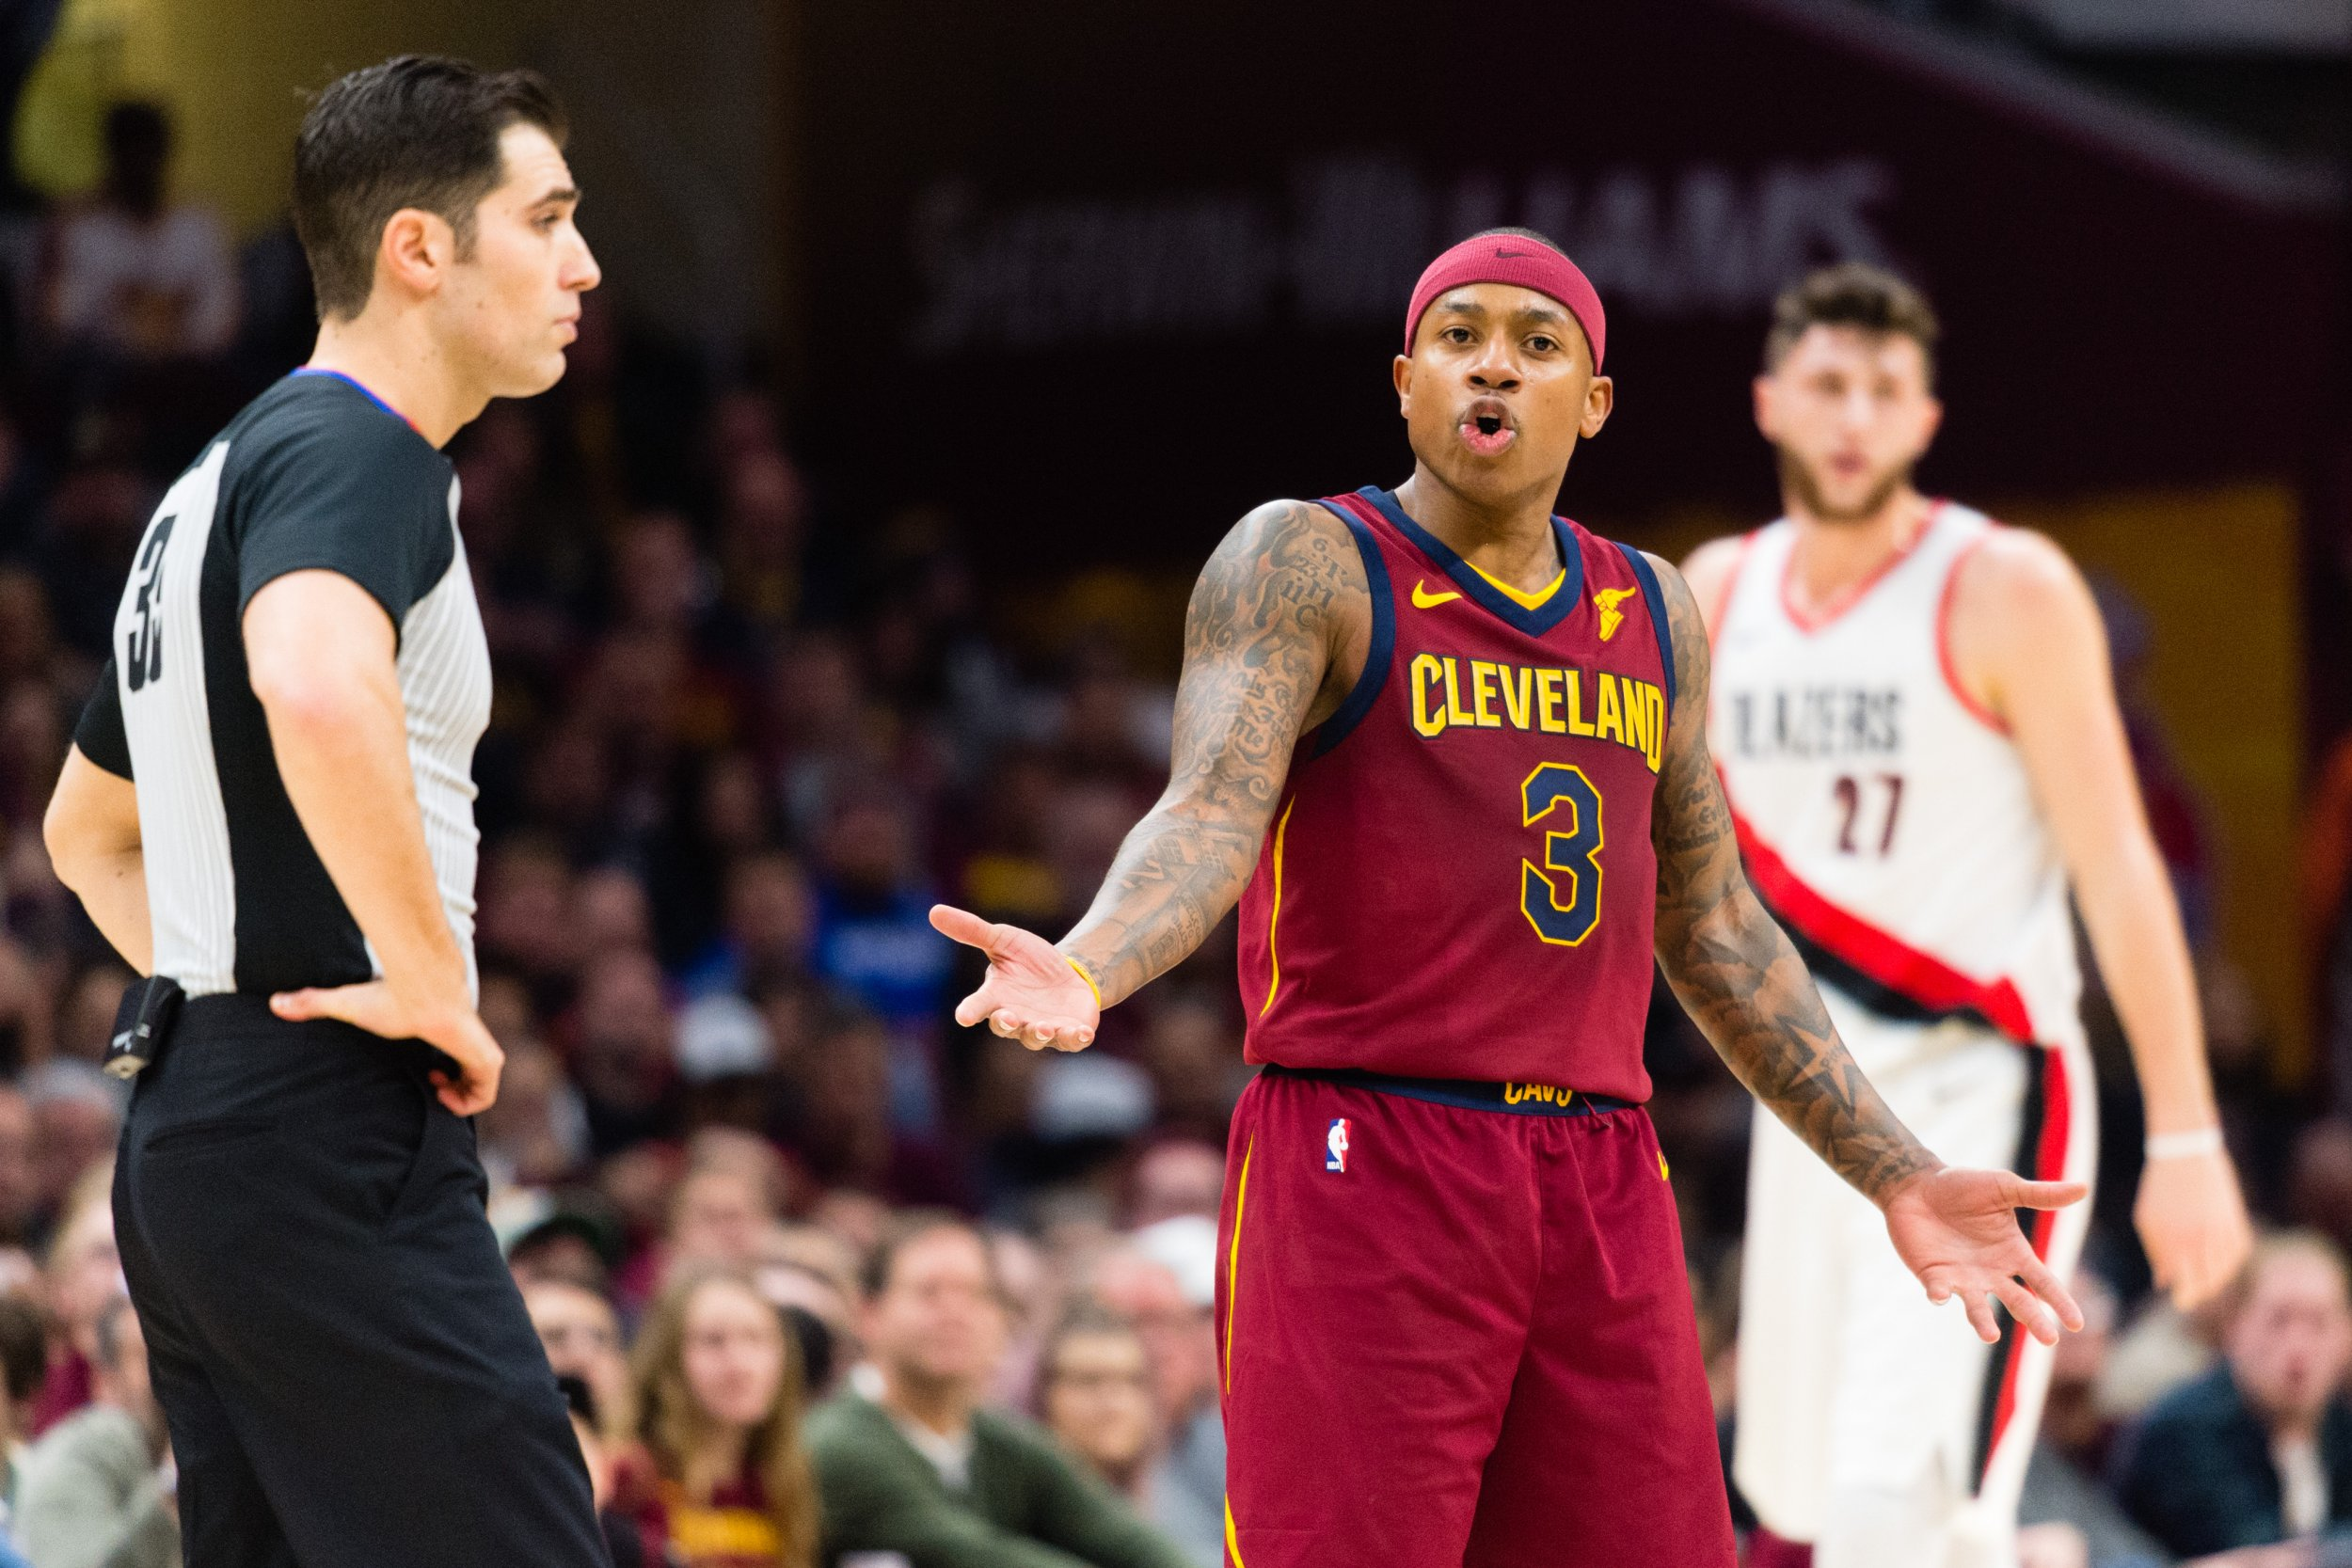 Isaiah Thomas of the Cleveland Cavaliers, center, at Quicken Loans Arena, January 2.